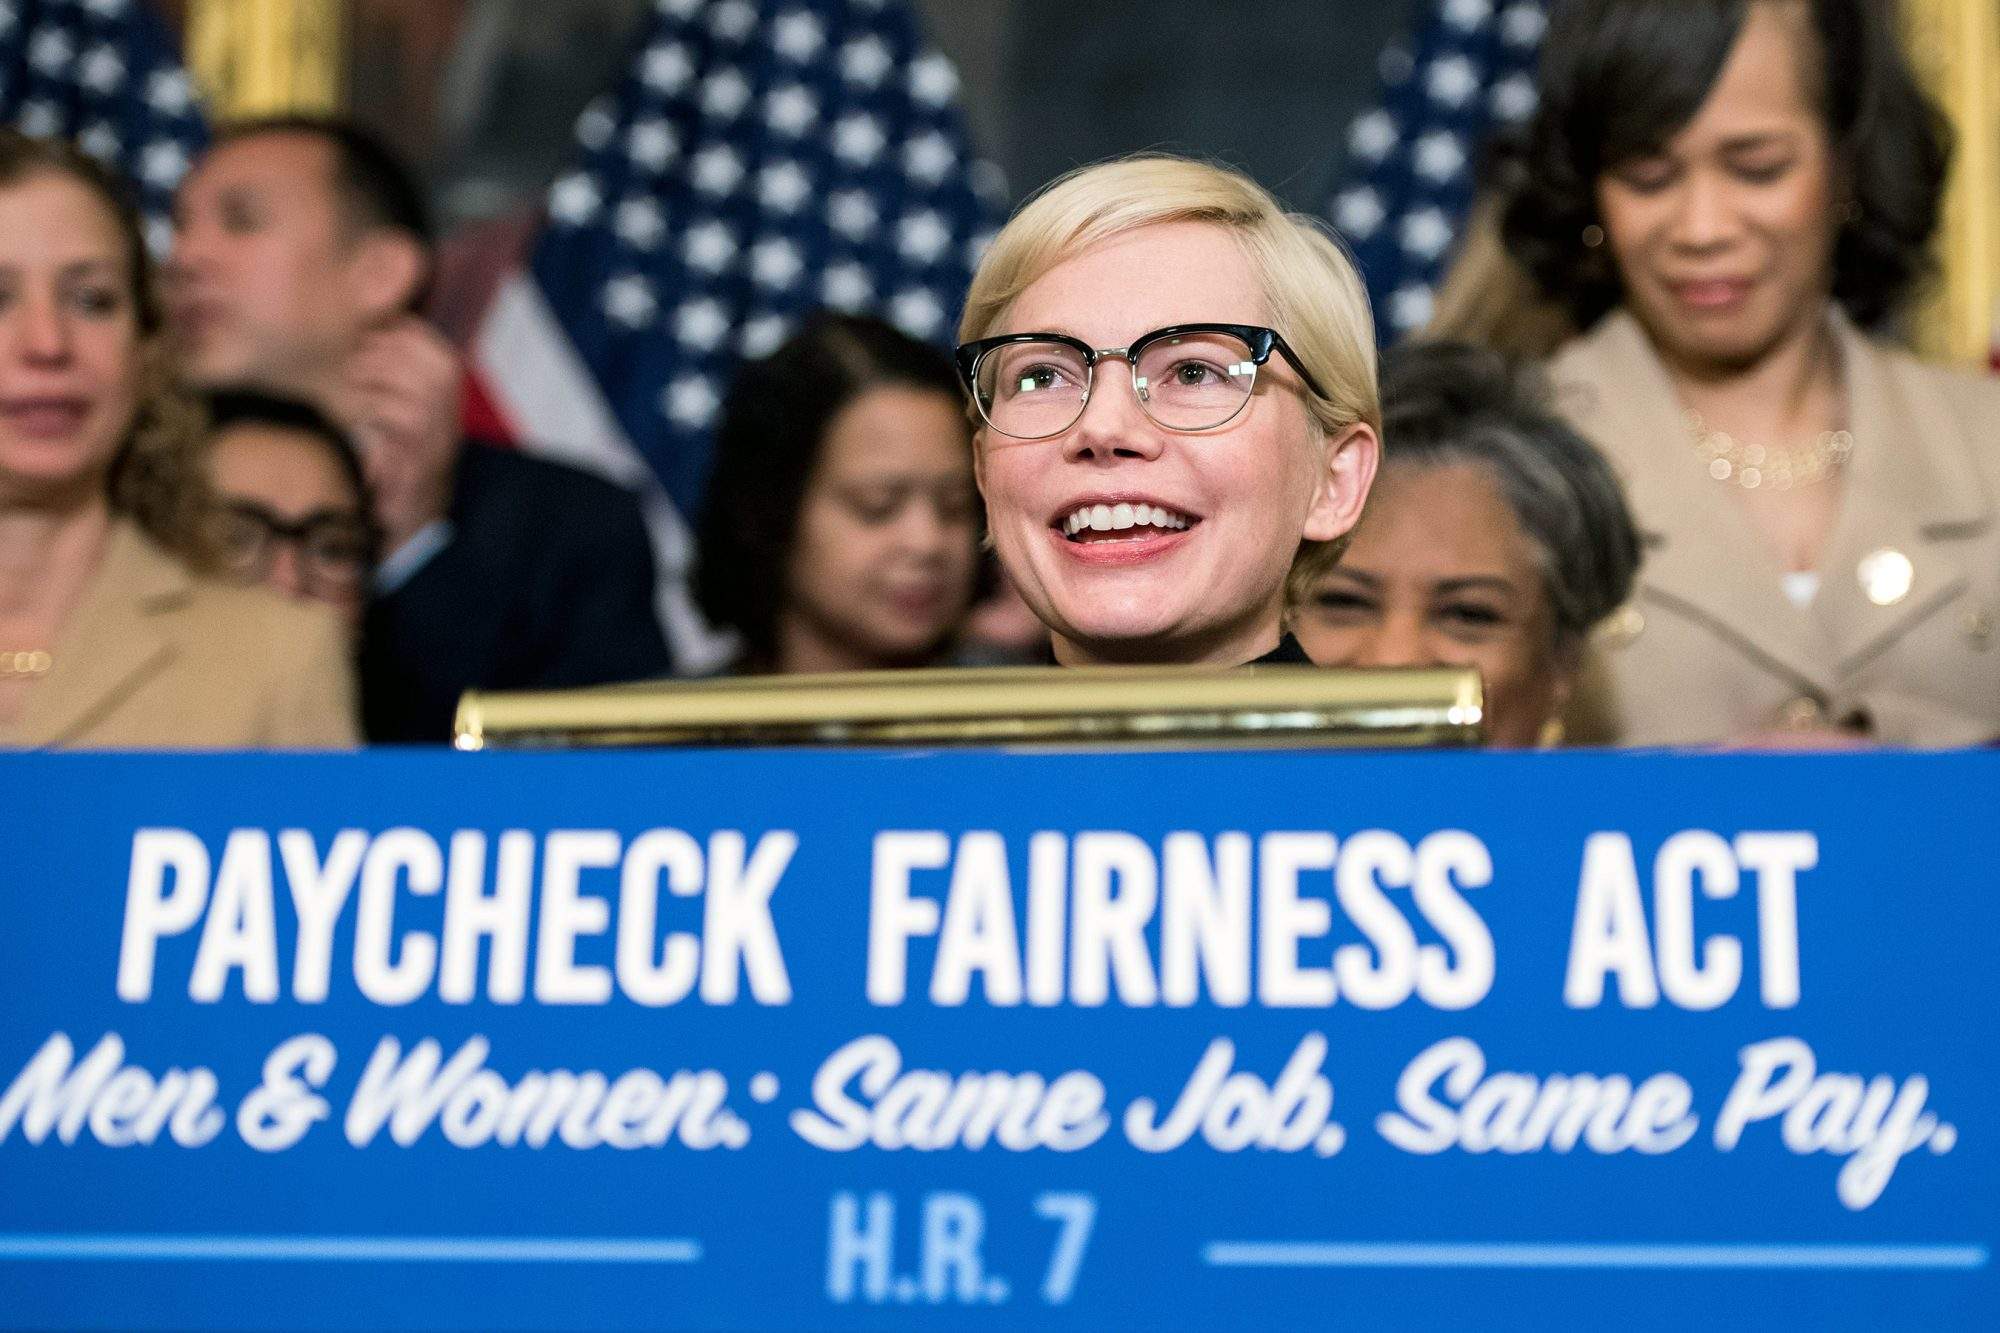 Paycheck Fairness Act